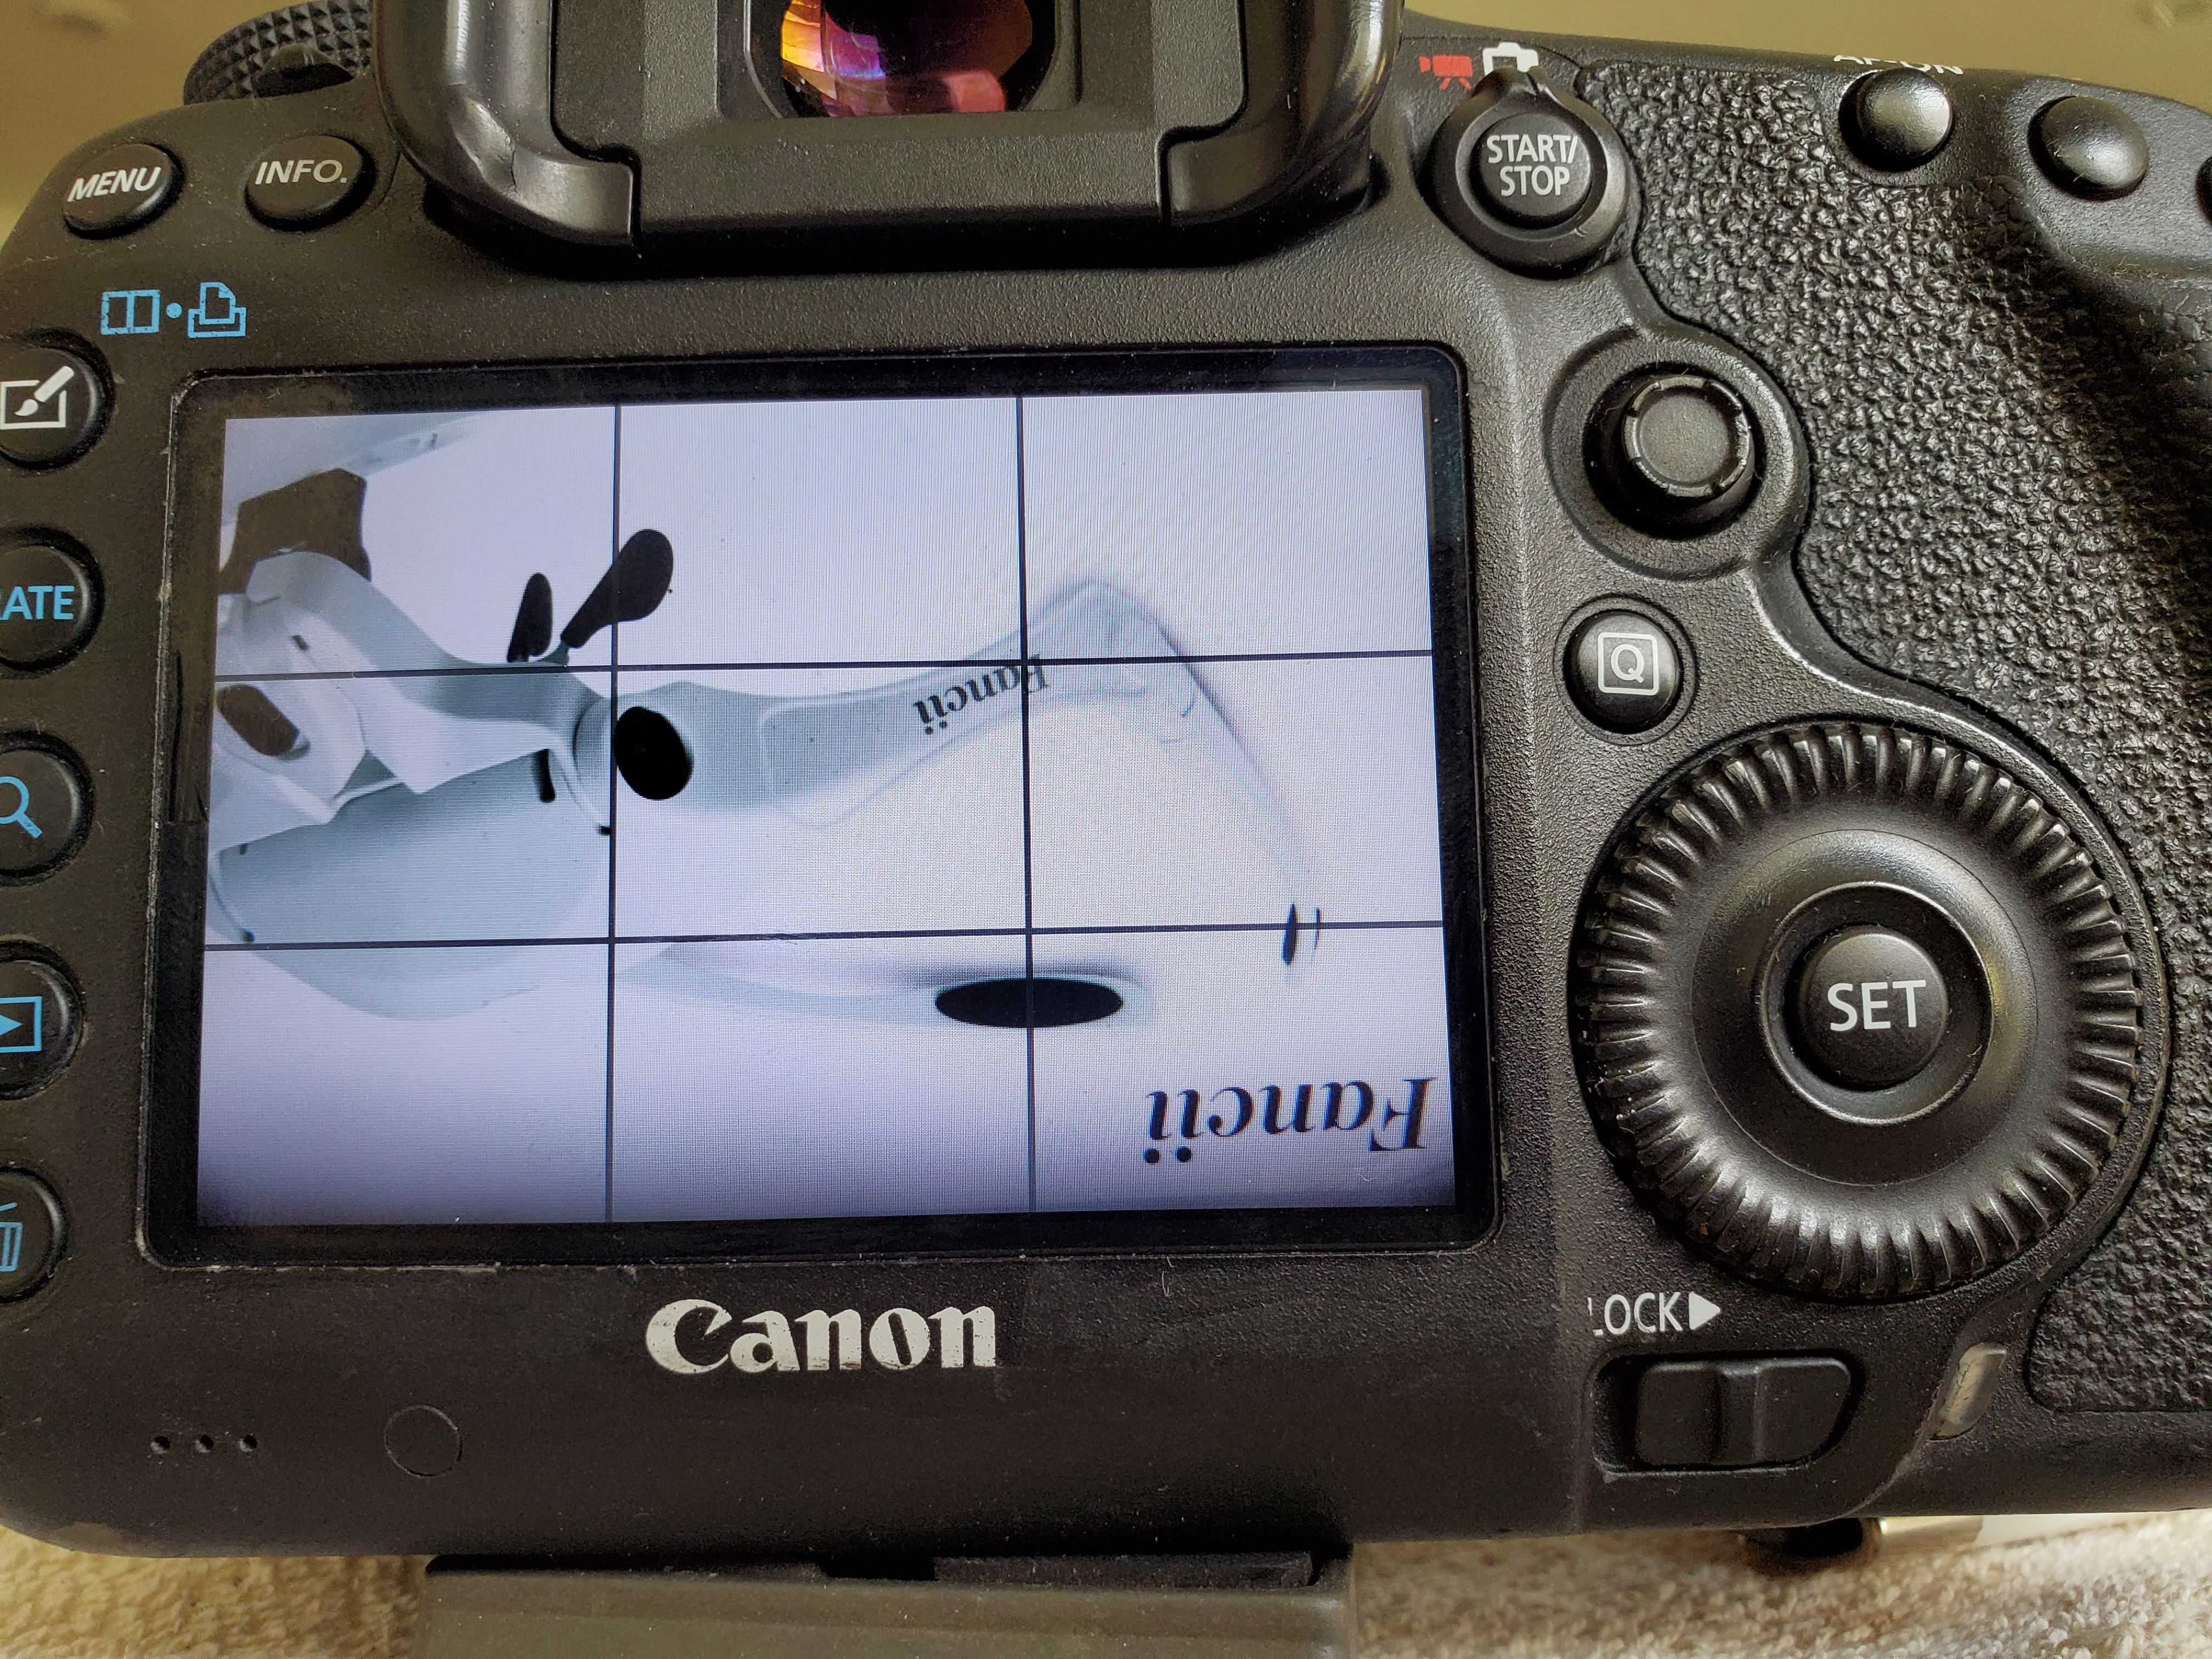 Image with banding when Shooting high speed